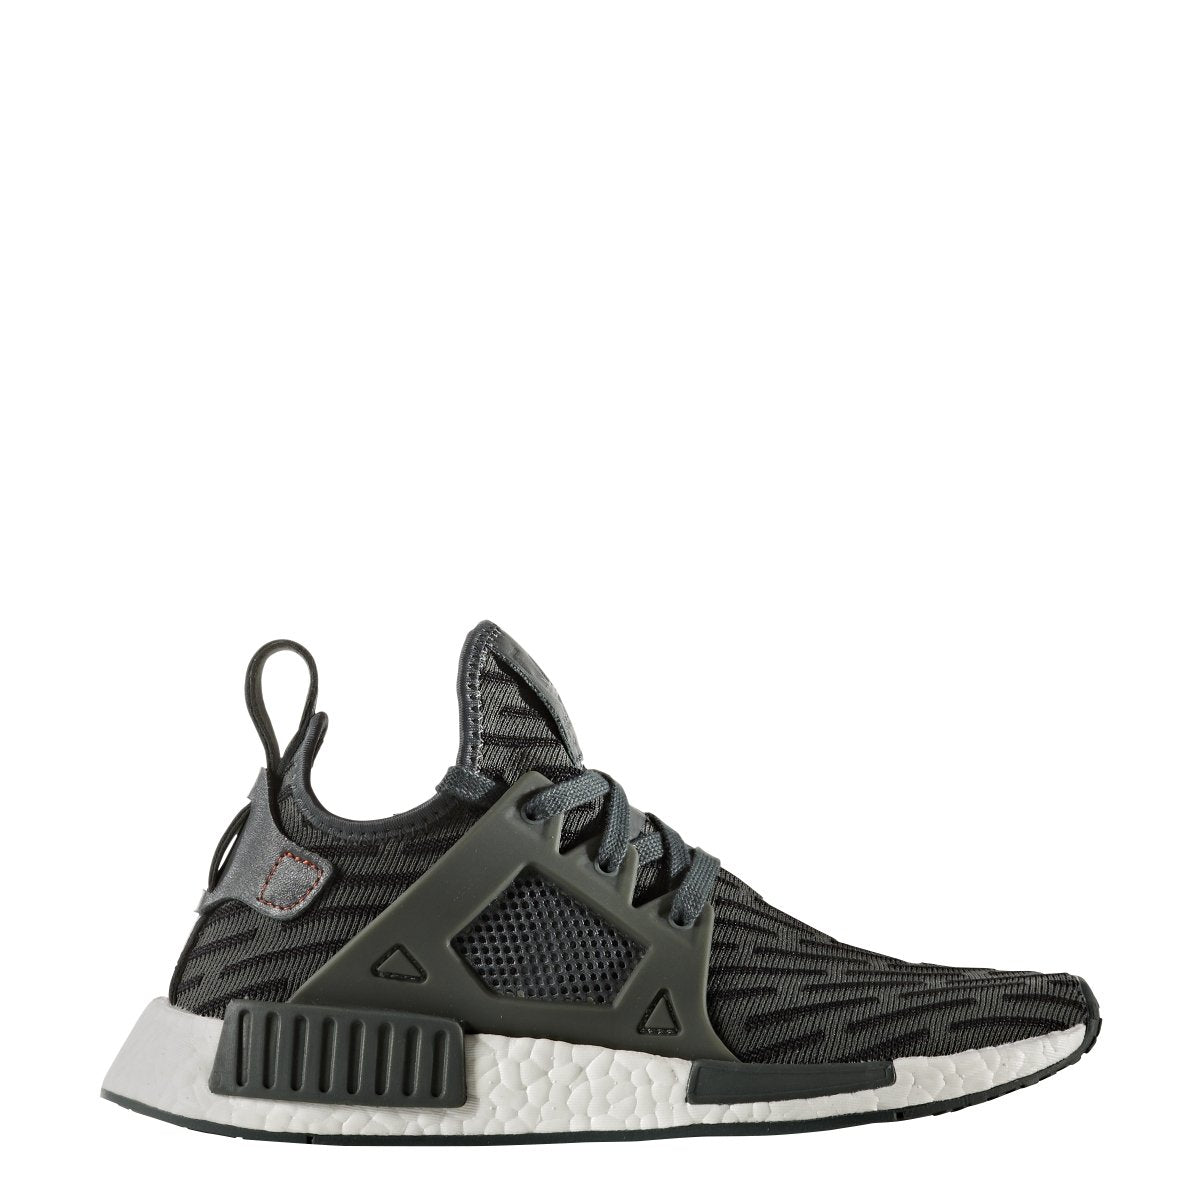 [BB2375] Womens NMD_XR1 PK W